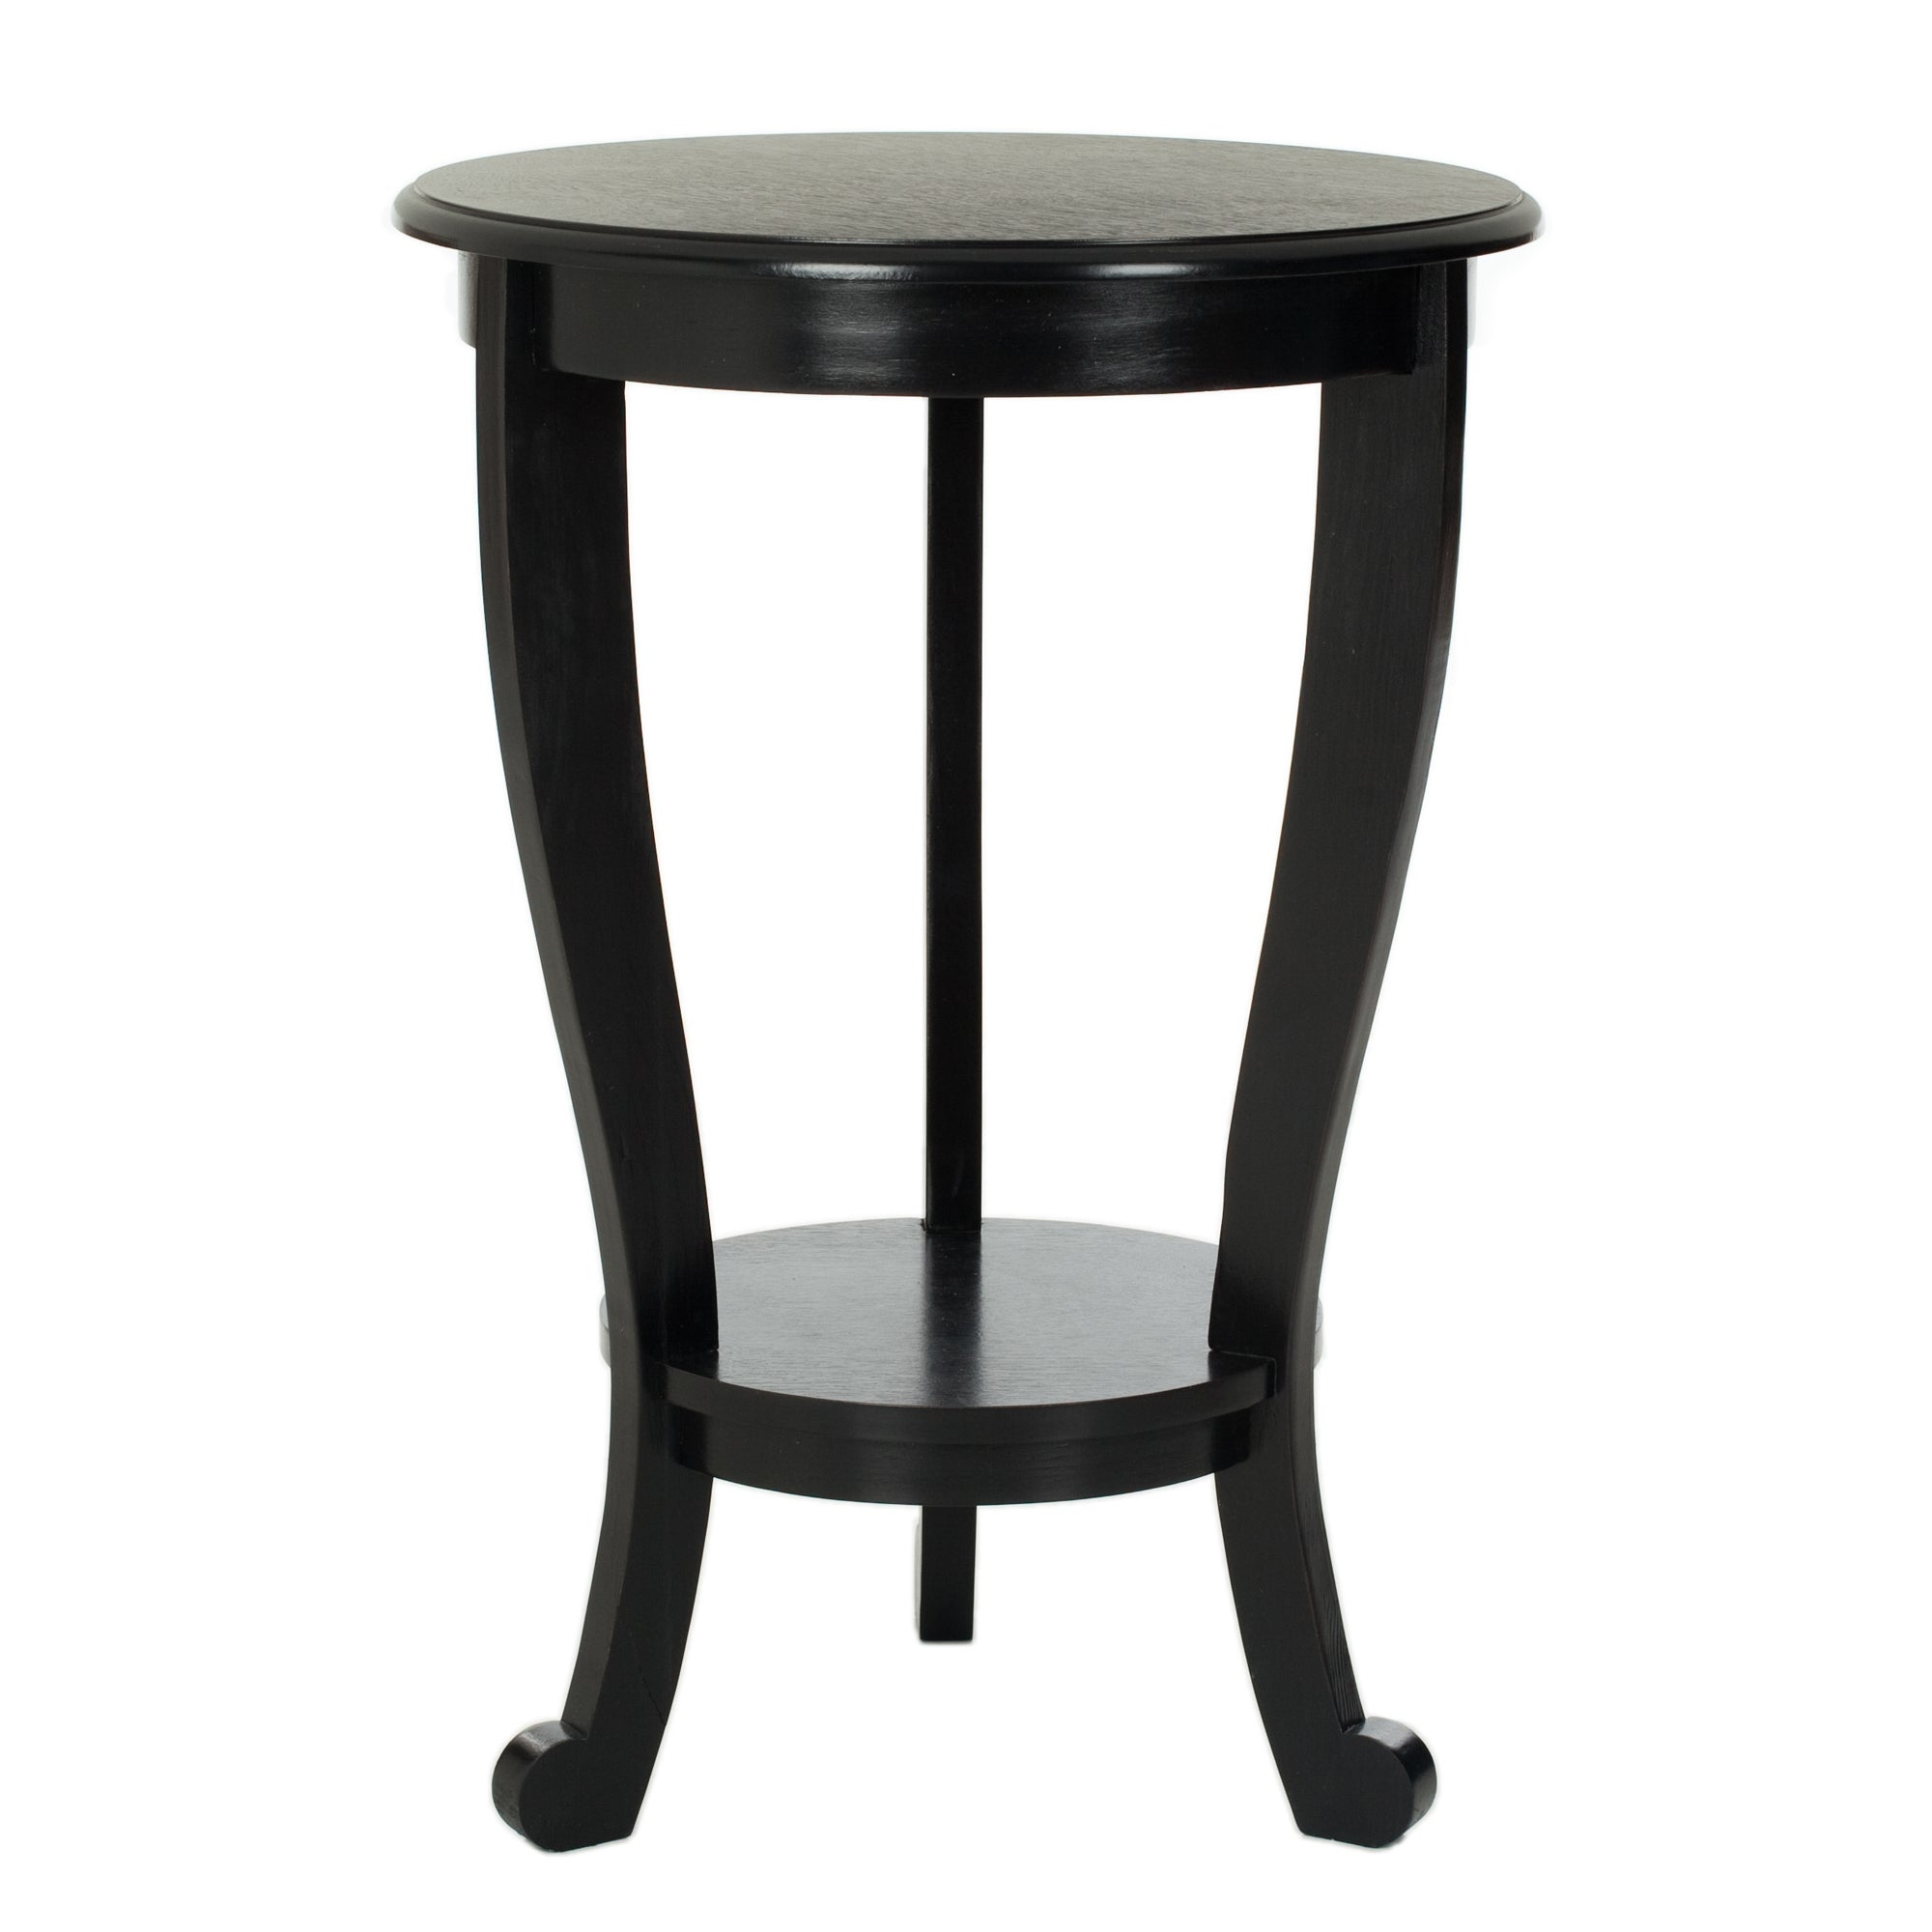 detail silo pedestal type table lexington tables modena items black carrera double brands home dining item